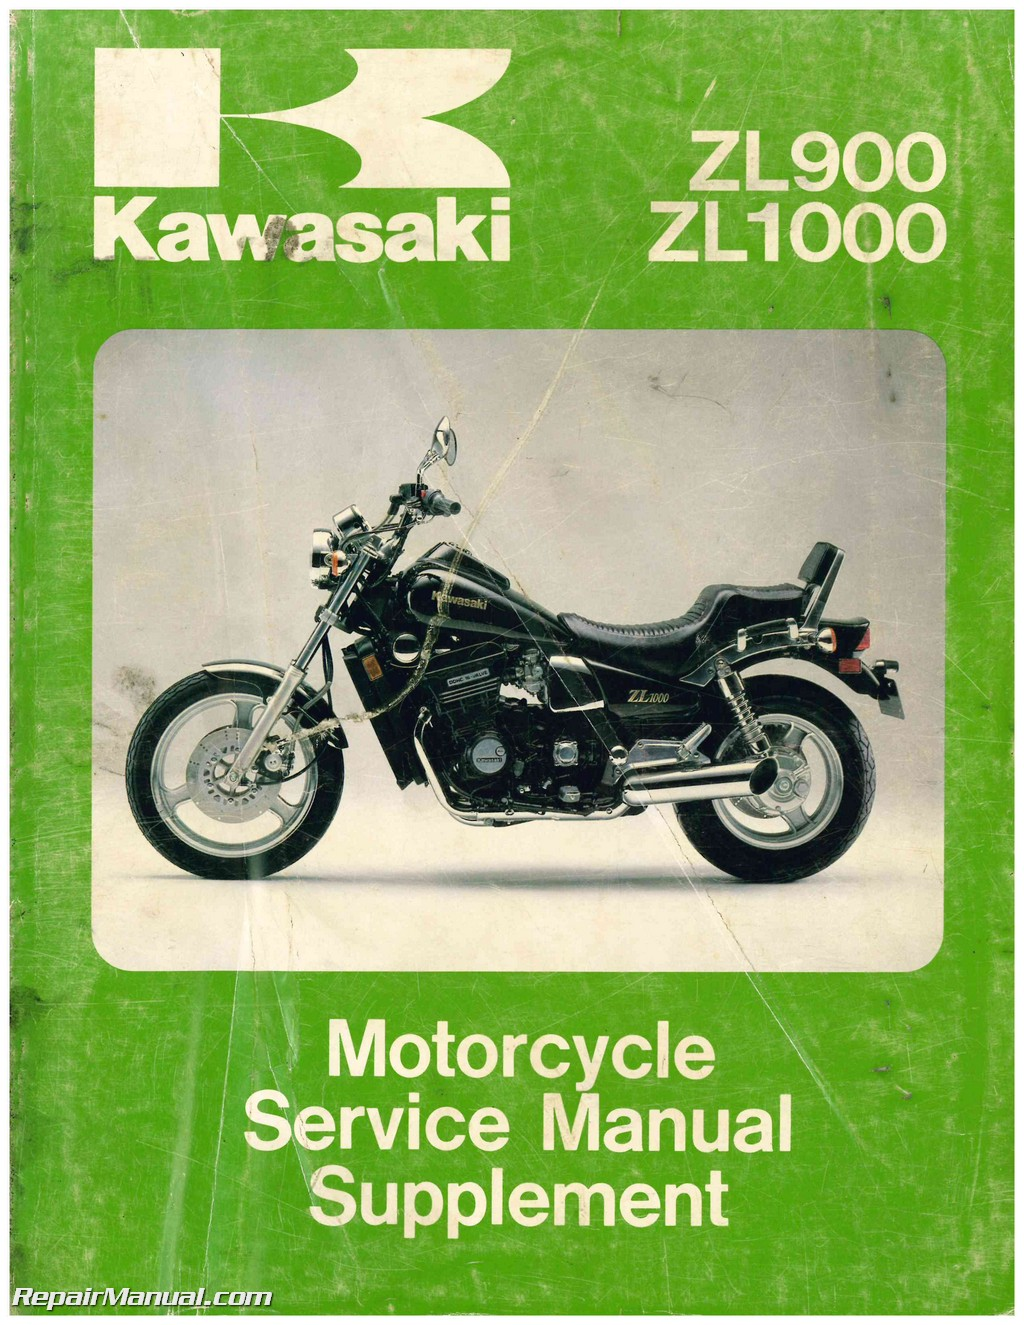 Zl1000 Wiring Diagram Schemes 1987 Kawasaki 300 Engine 1985 1988 Zl900 Eliminator Motorcycle Service Manual Rh Repairmanual Com Specs Vs Vmax